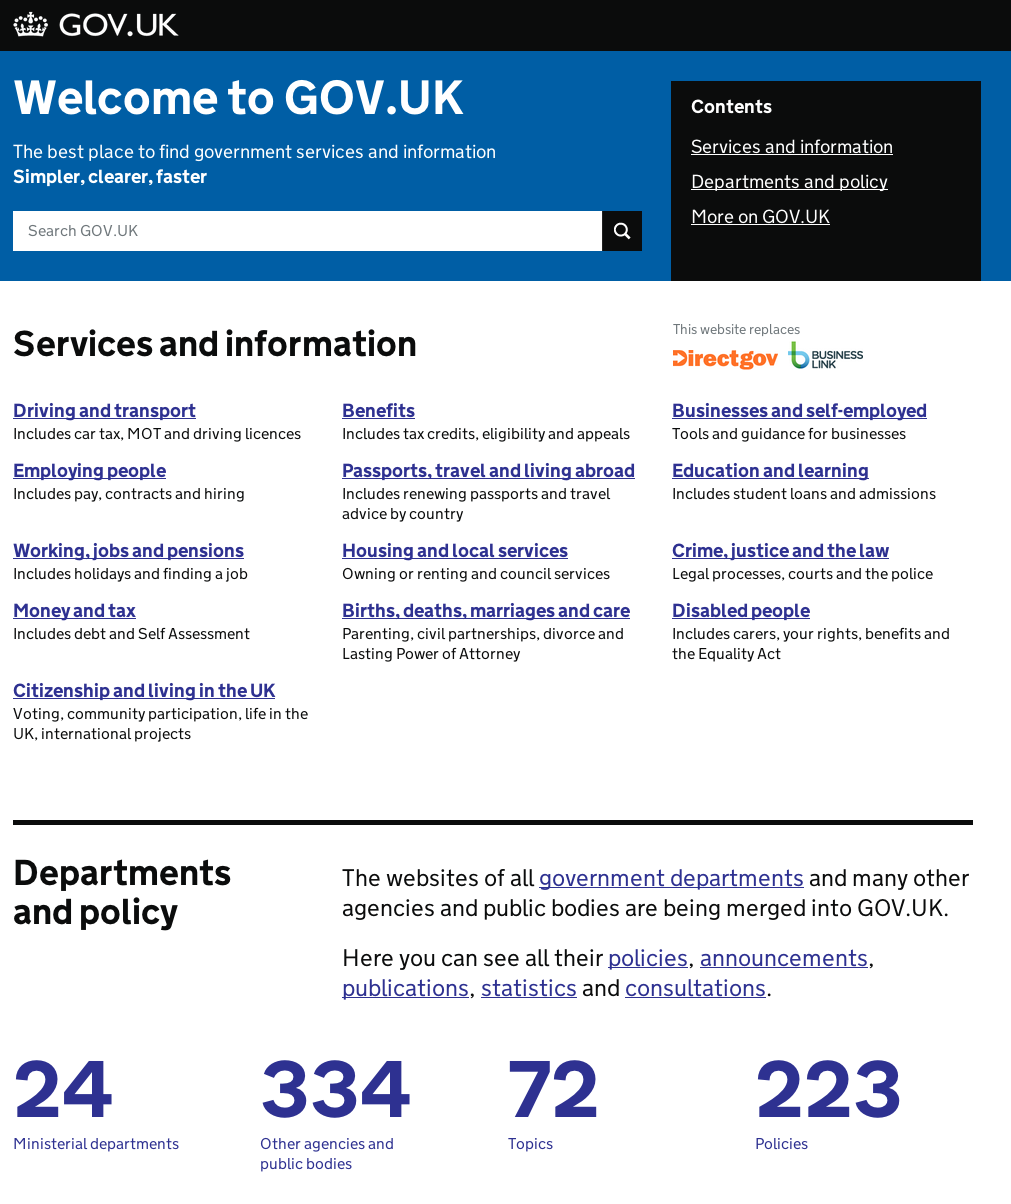 Screenshot of GOV.UK homepage